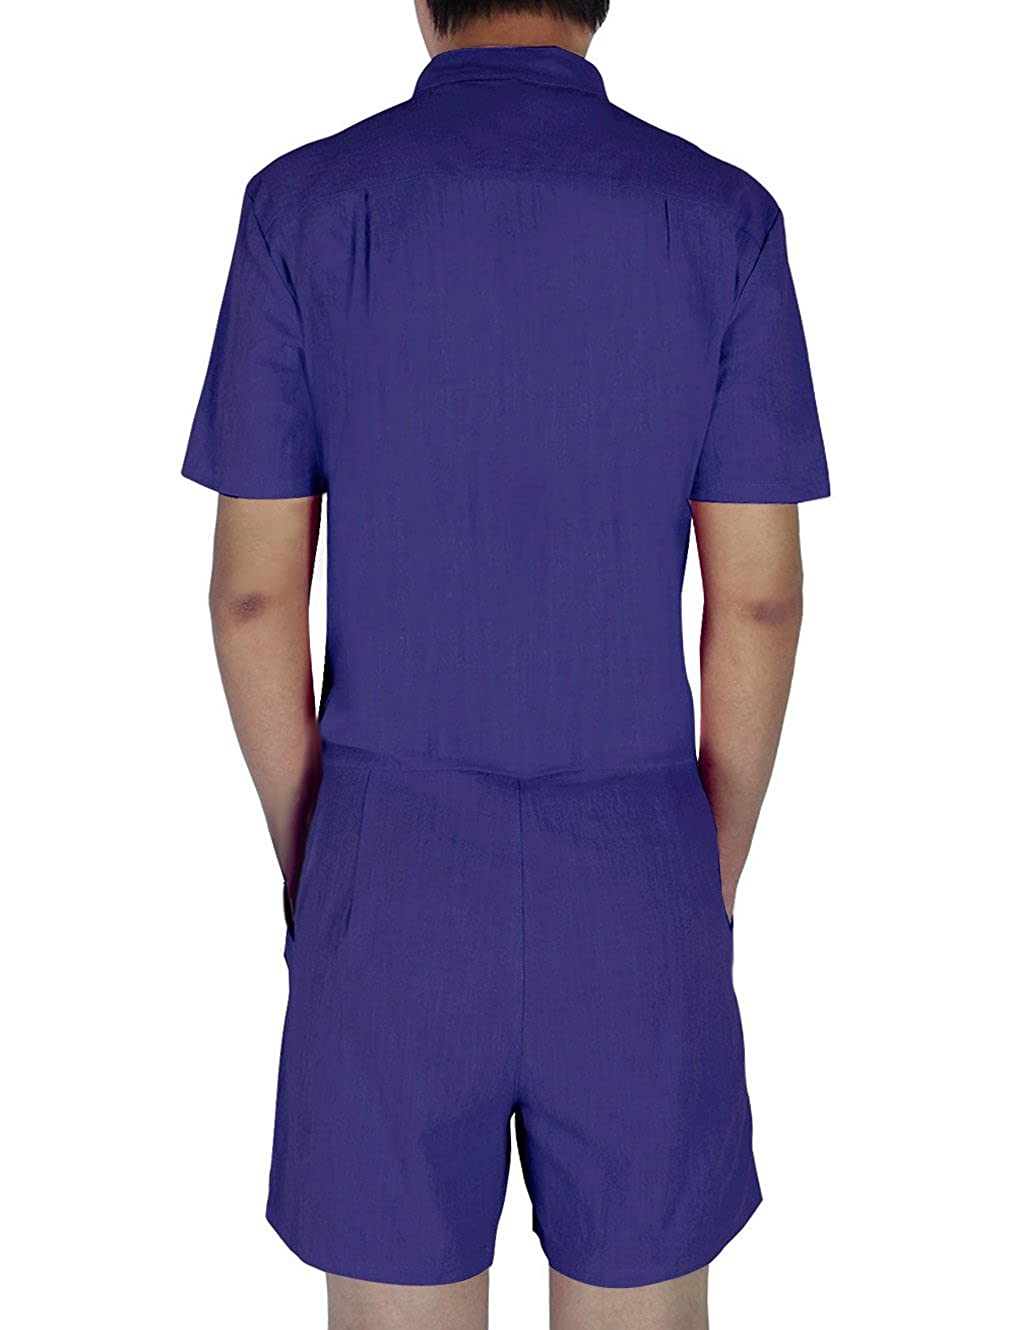 772008c7c1b2 Leapparel Purple Romper for Men Solid Overall with Grandad Collar and Hip  Hop Casual Short Cargo Pants Rompers Playsuit Fancy Dress One Piece Medium   ...